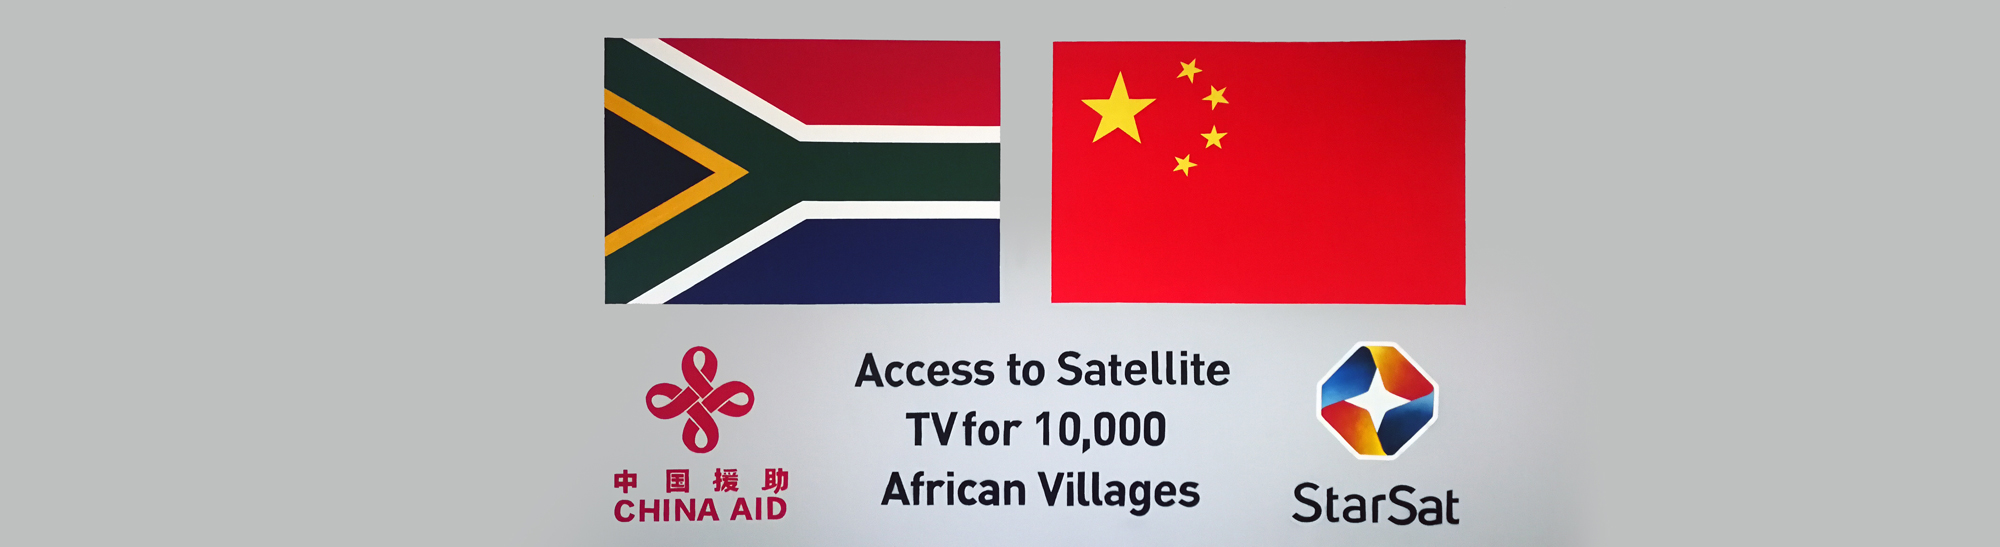 Access to Satellite TV for 10,000 African Villages